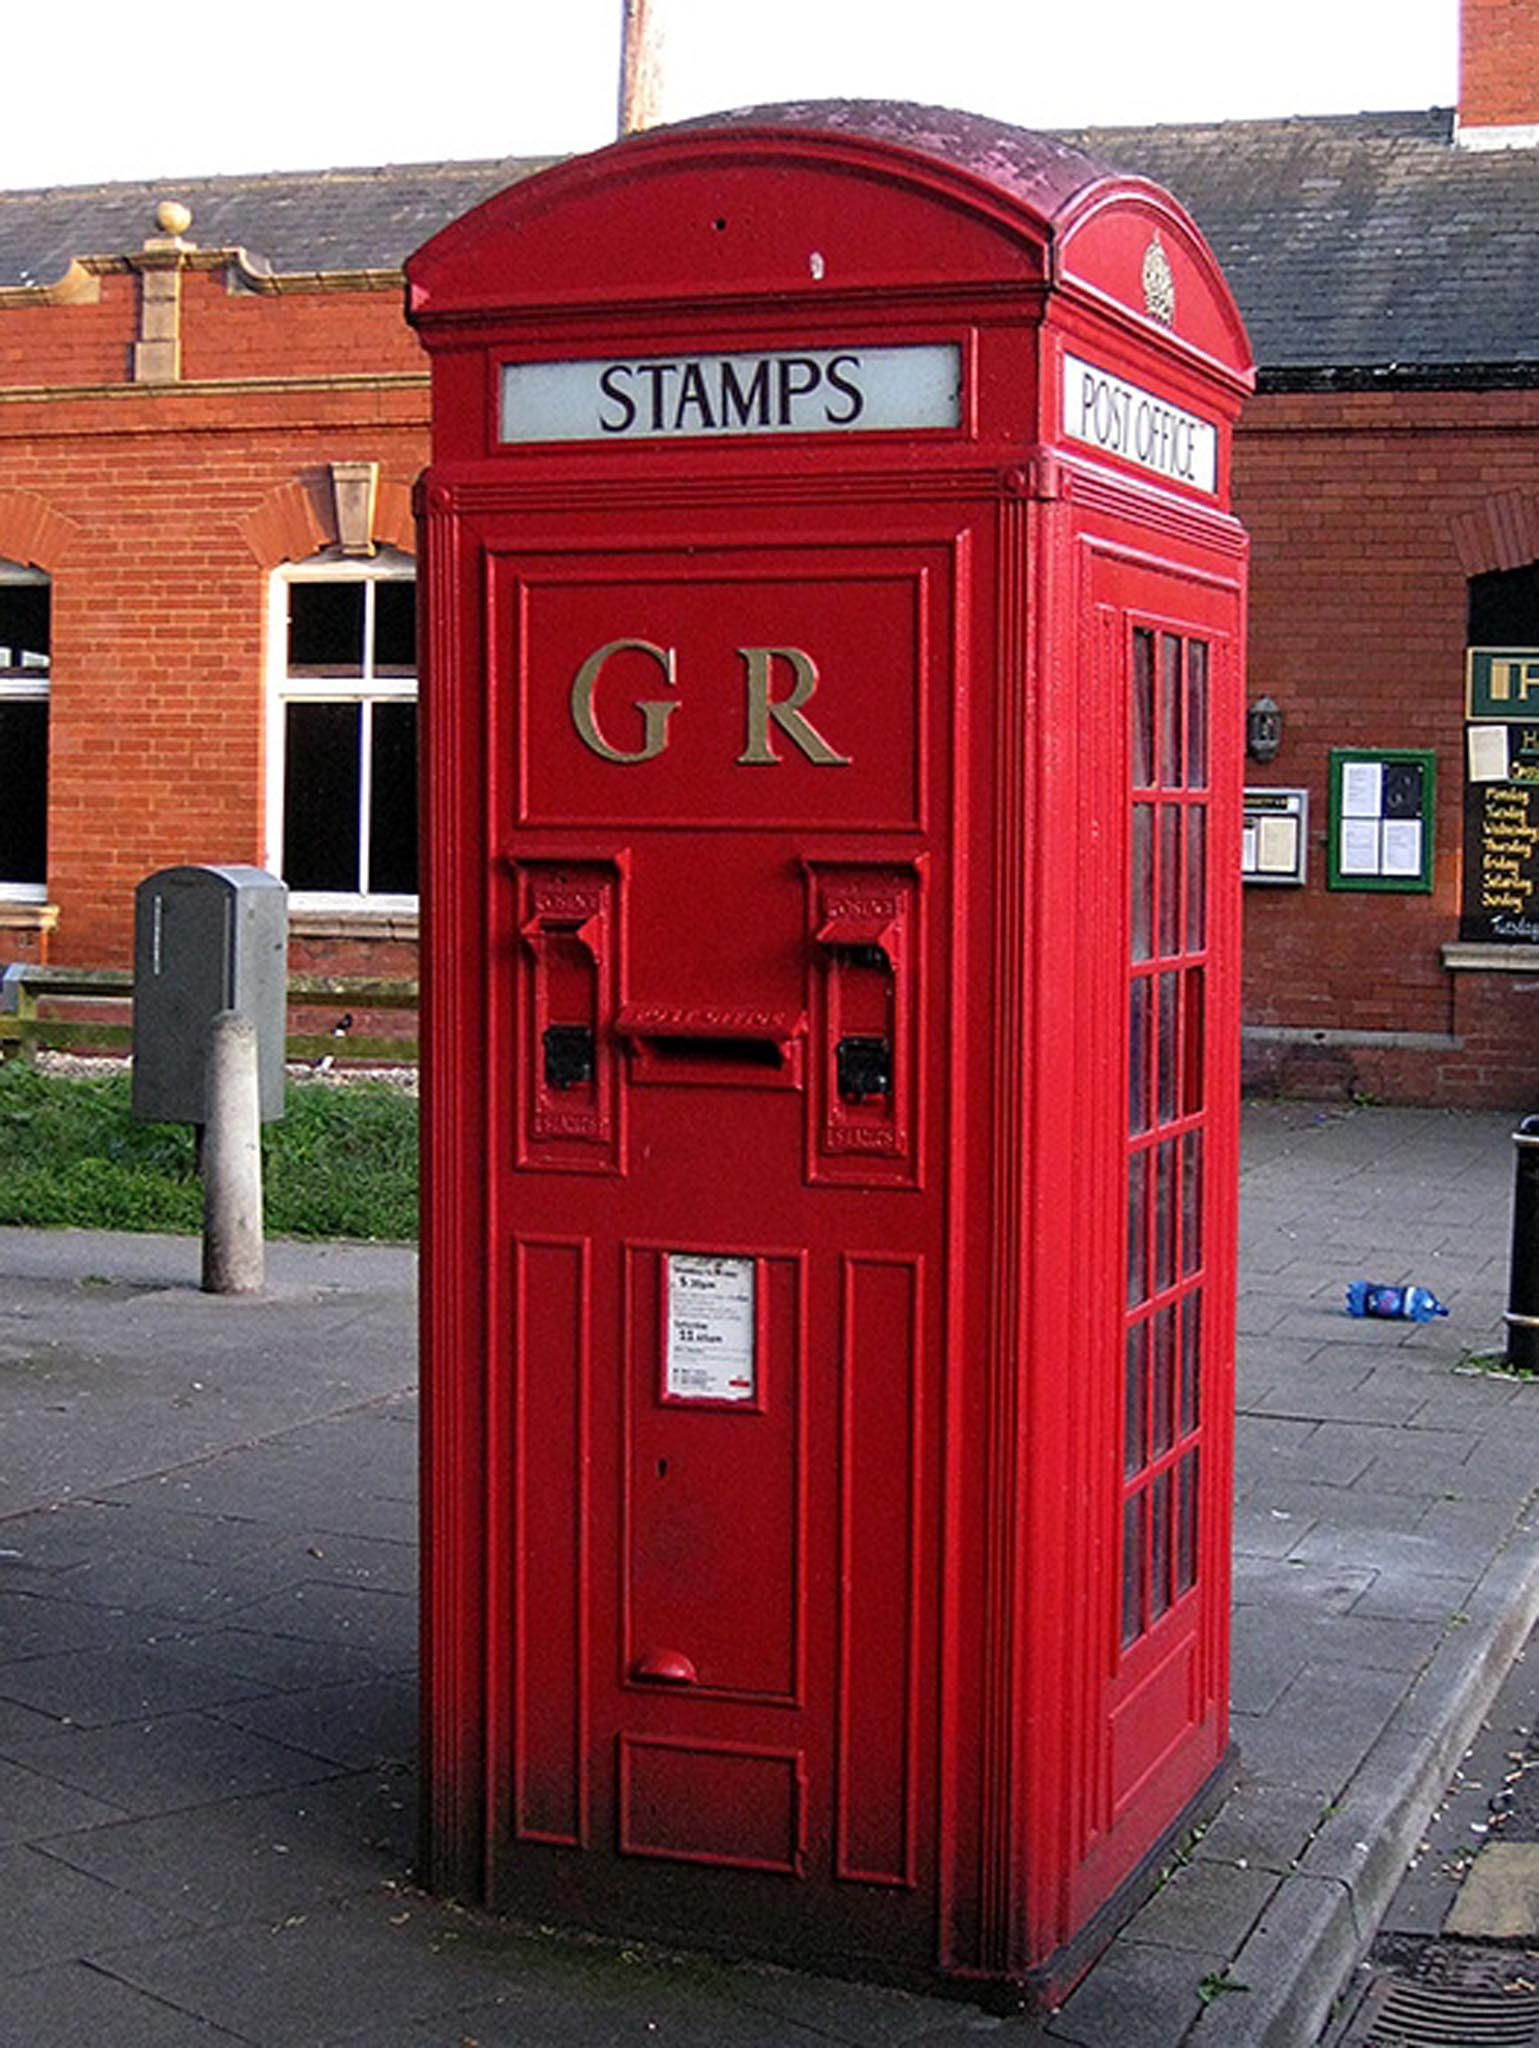 GR Vermillion Giant combined telephone kiosk and post box, 1920s, North East England. Howard Wilson